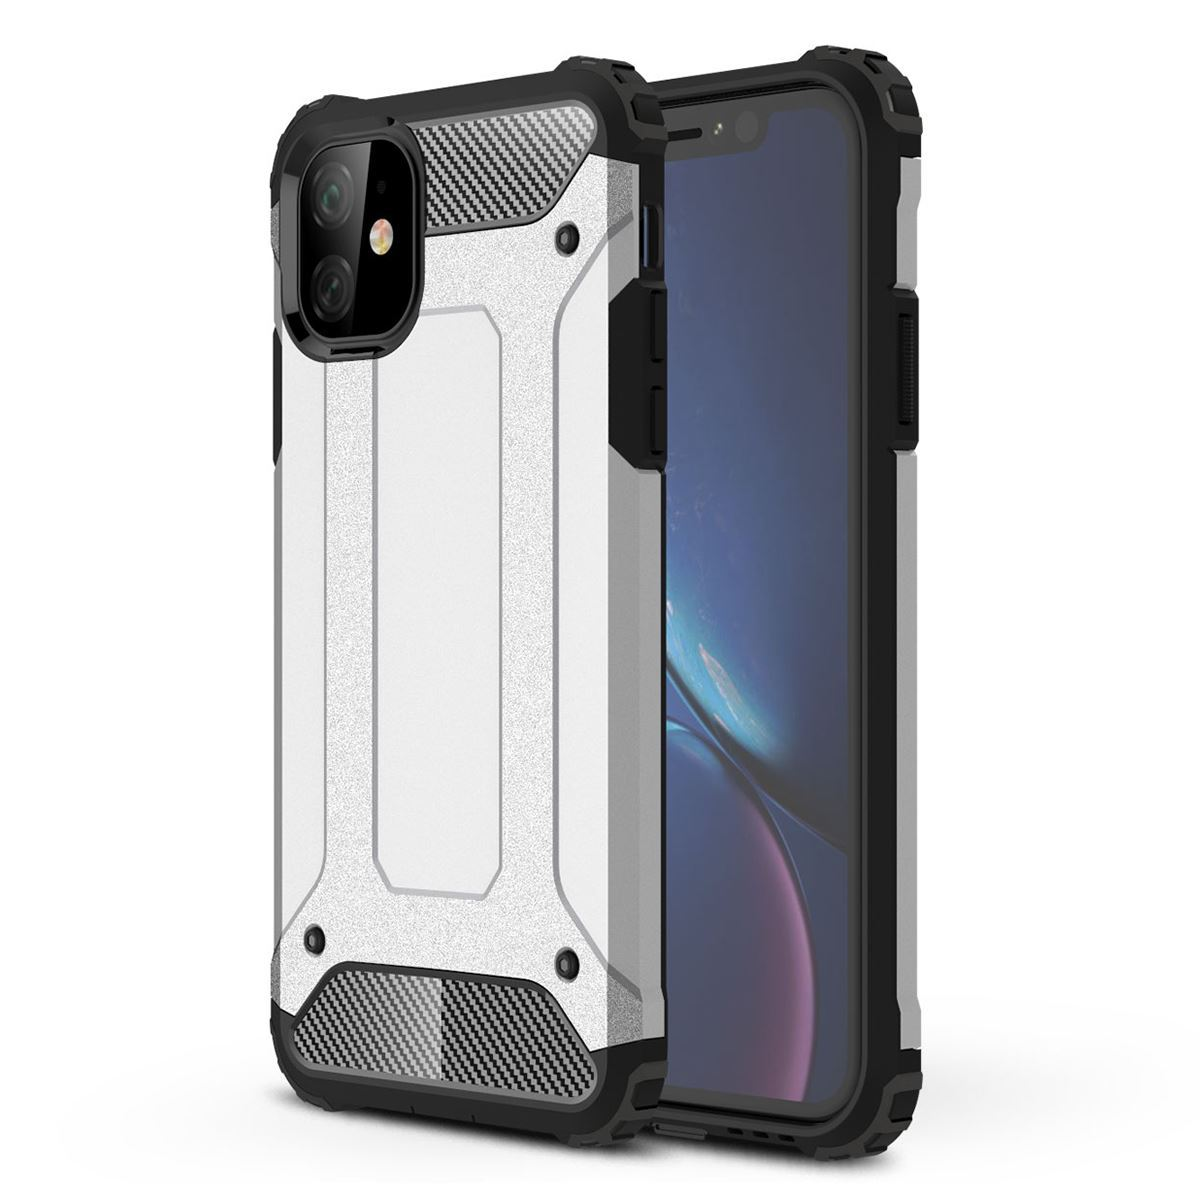 iPhone 11 Case Shockproof Protective Cover - Grey